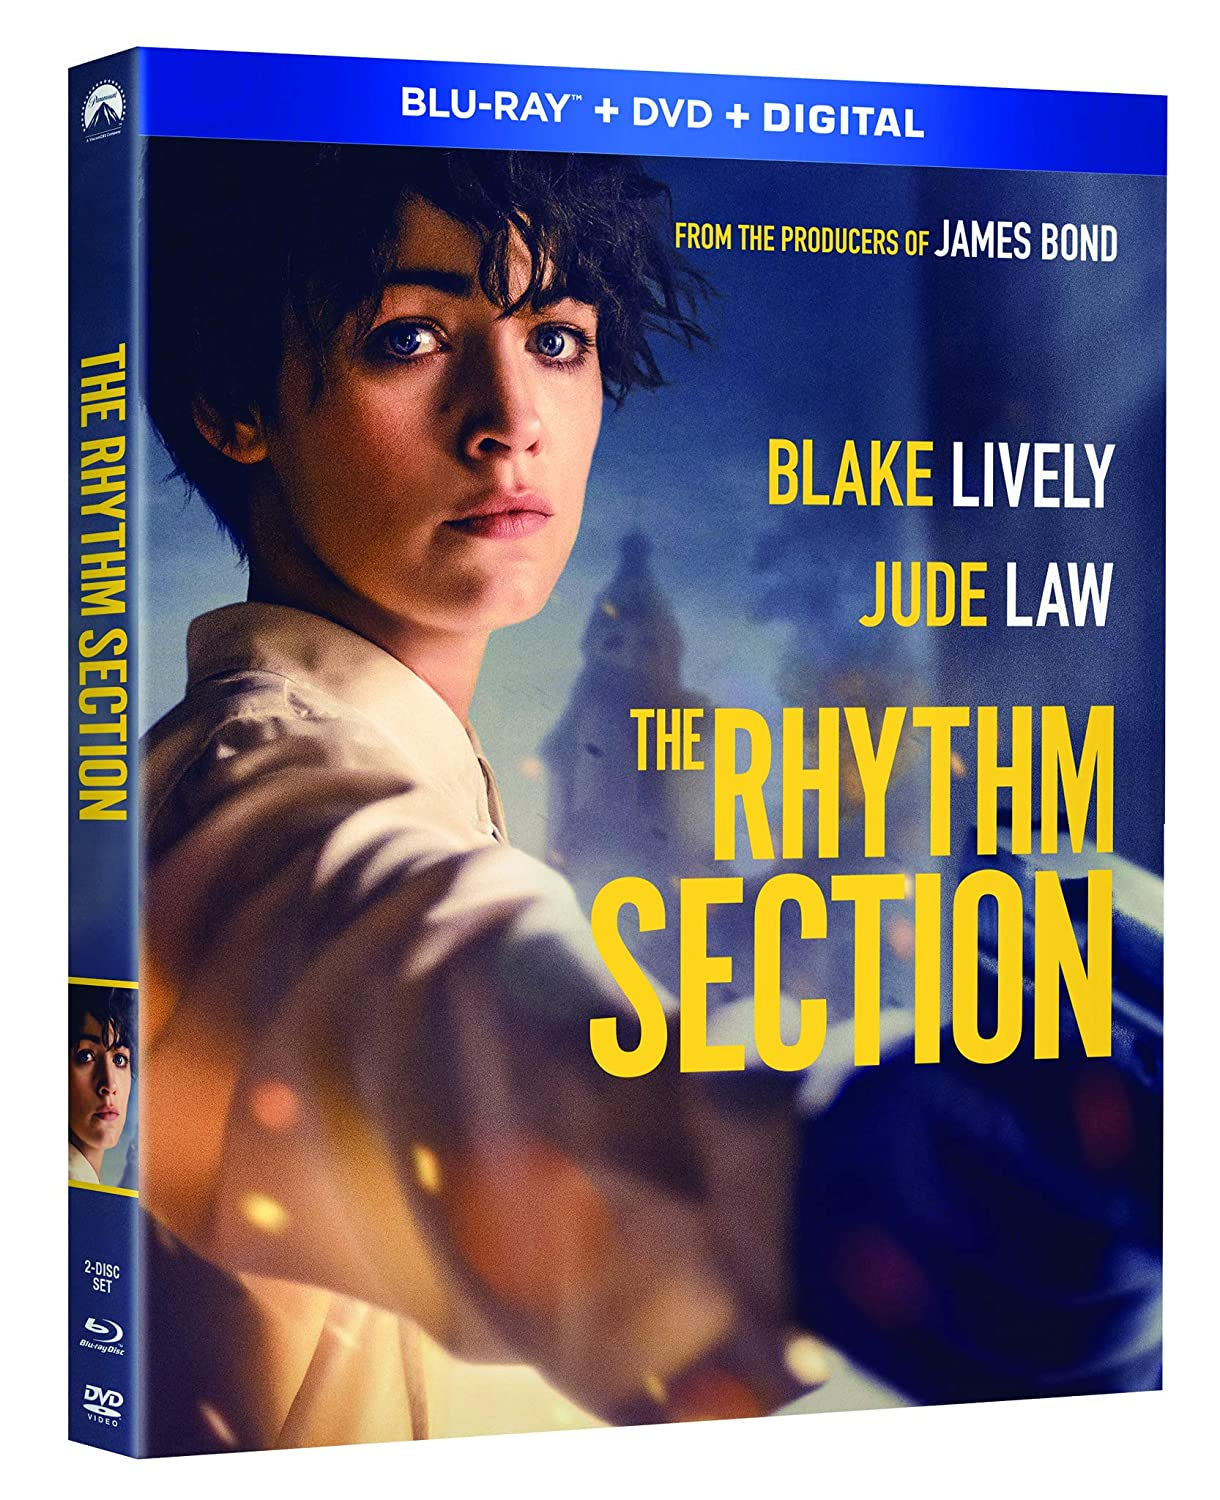 The Rhythm Section [Movie] - The Rhythm Section | obsessionrecords